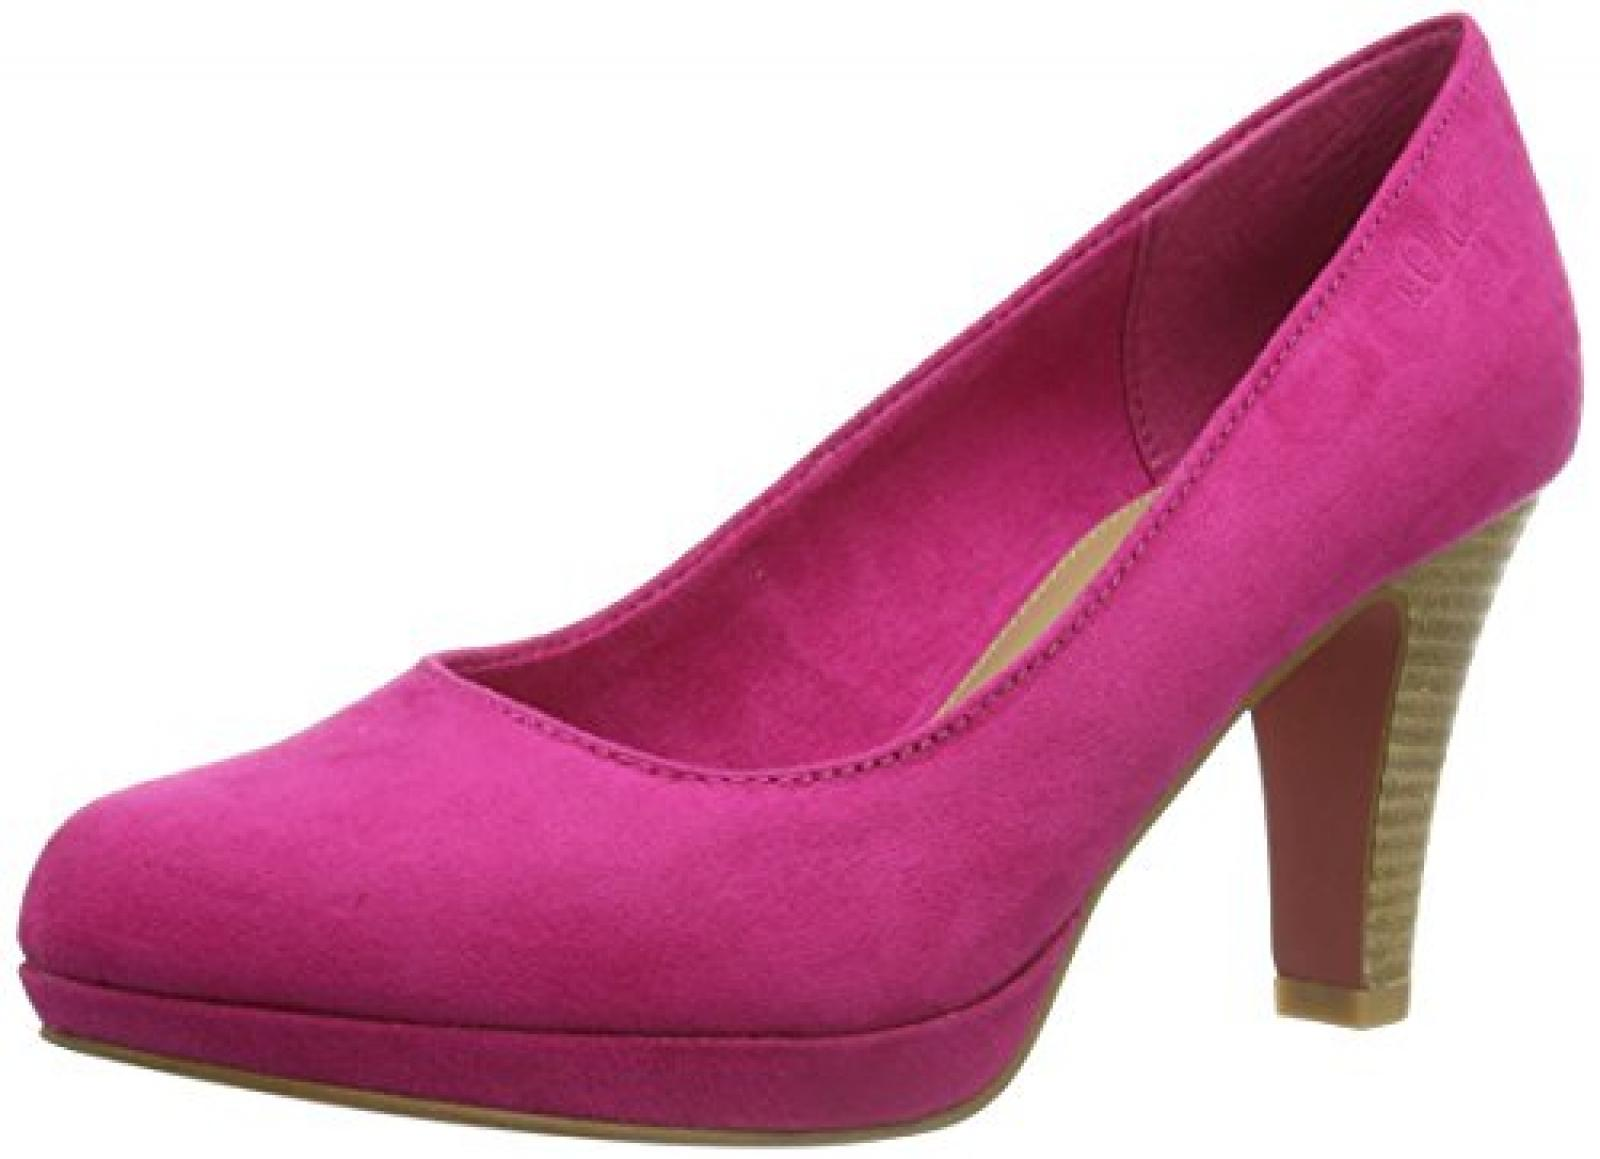 s.Oliver Casual 5-5-22411-22 Damen Pumps